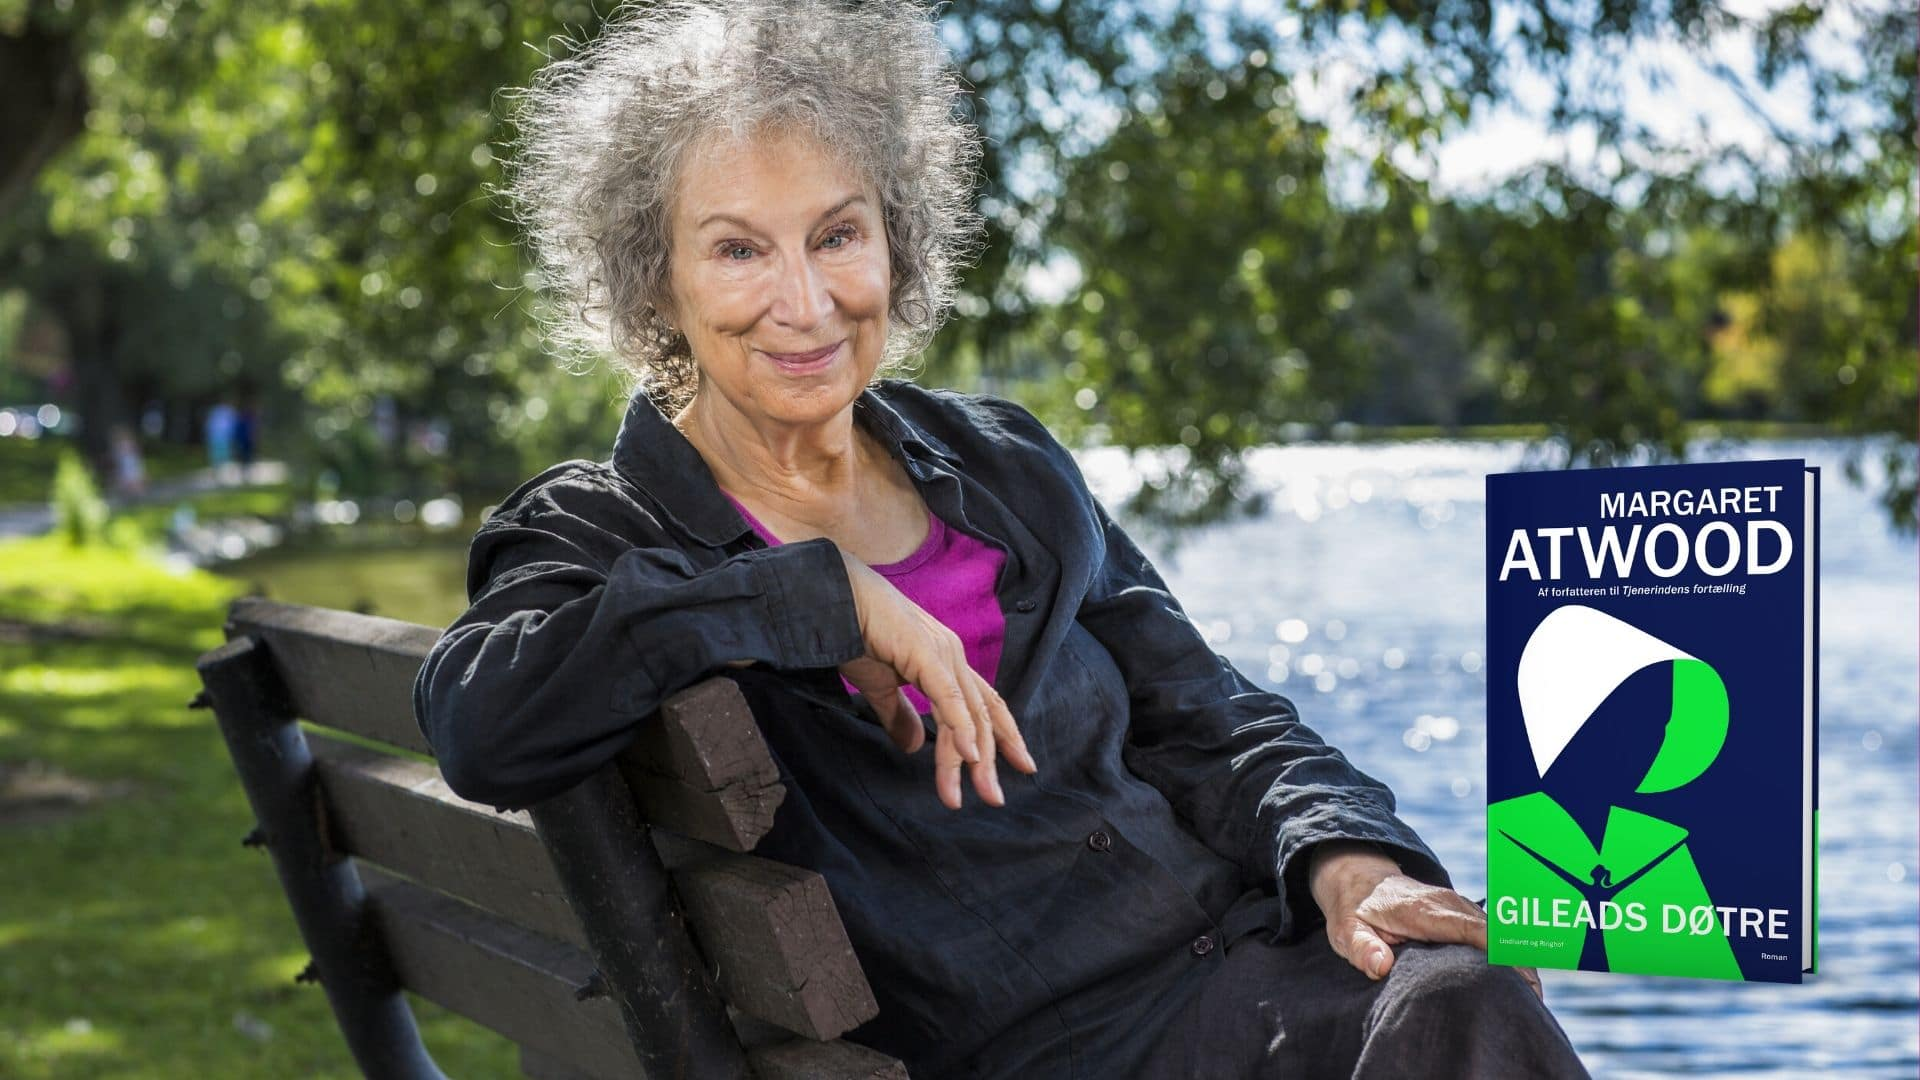 Margaret Atwood, Gileads døtre, The Testaments, Booker pris